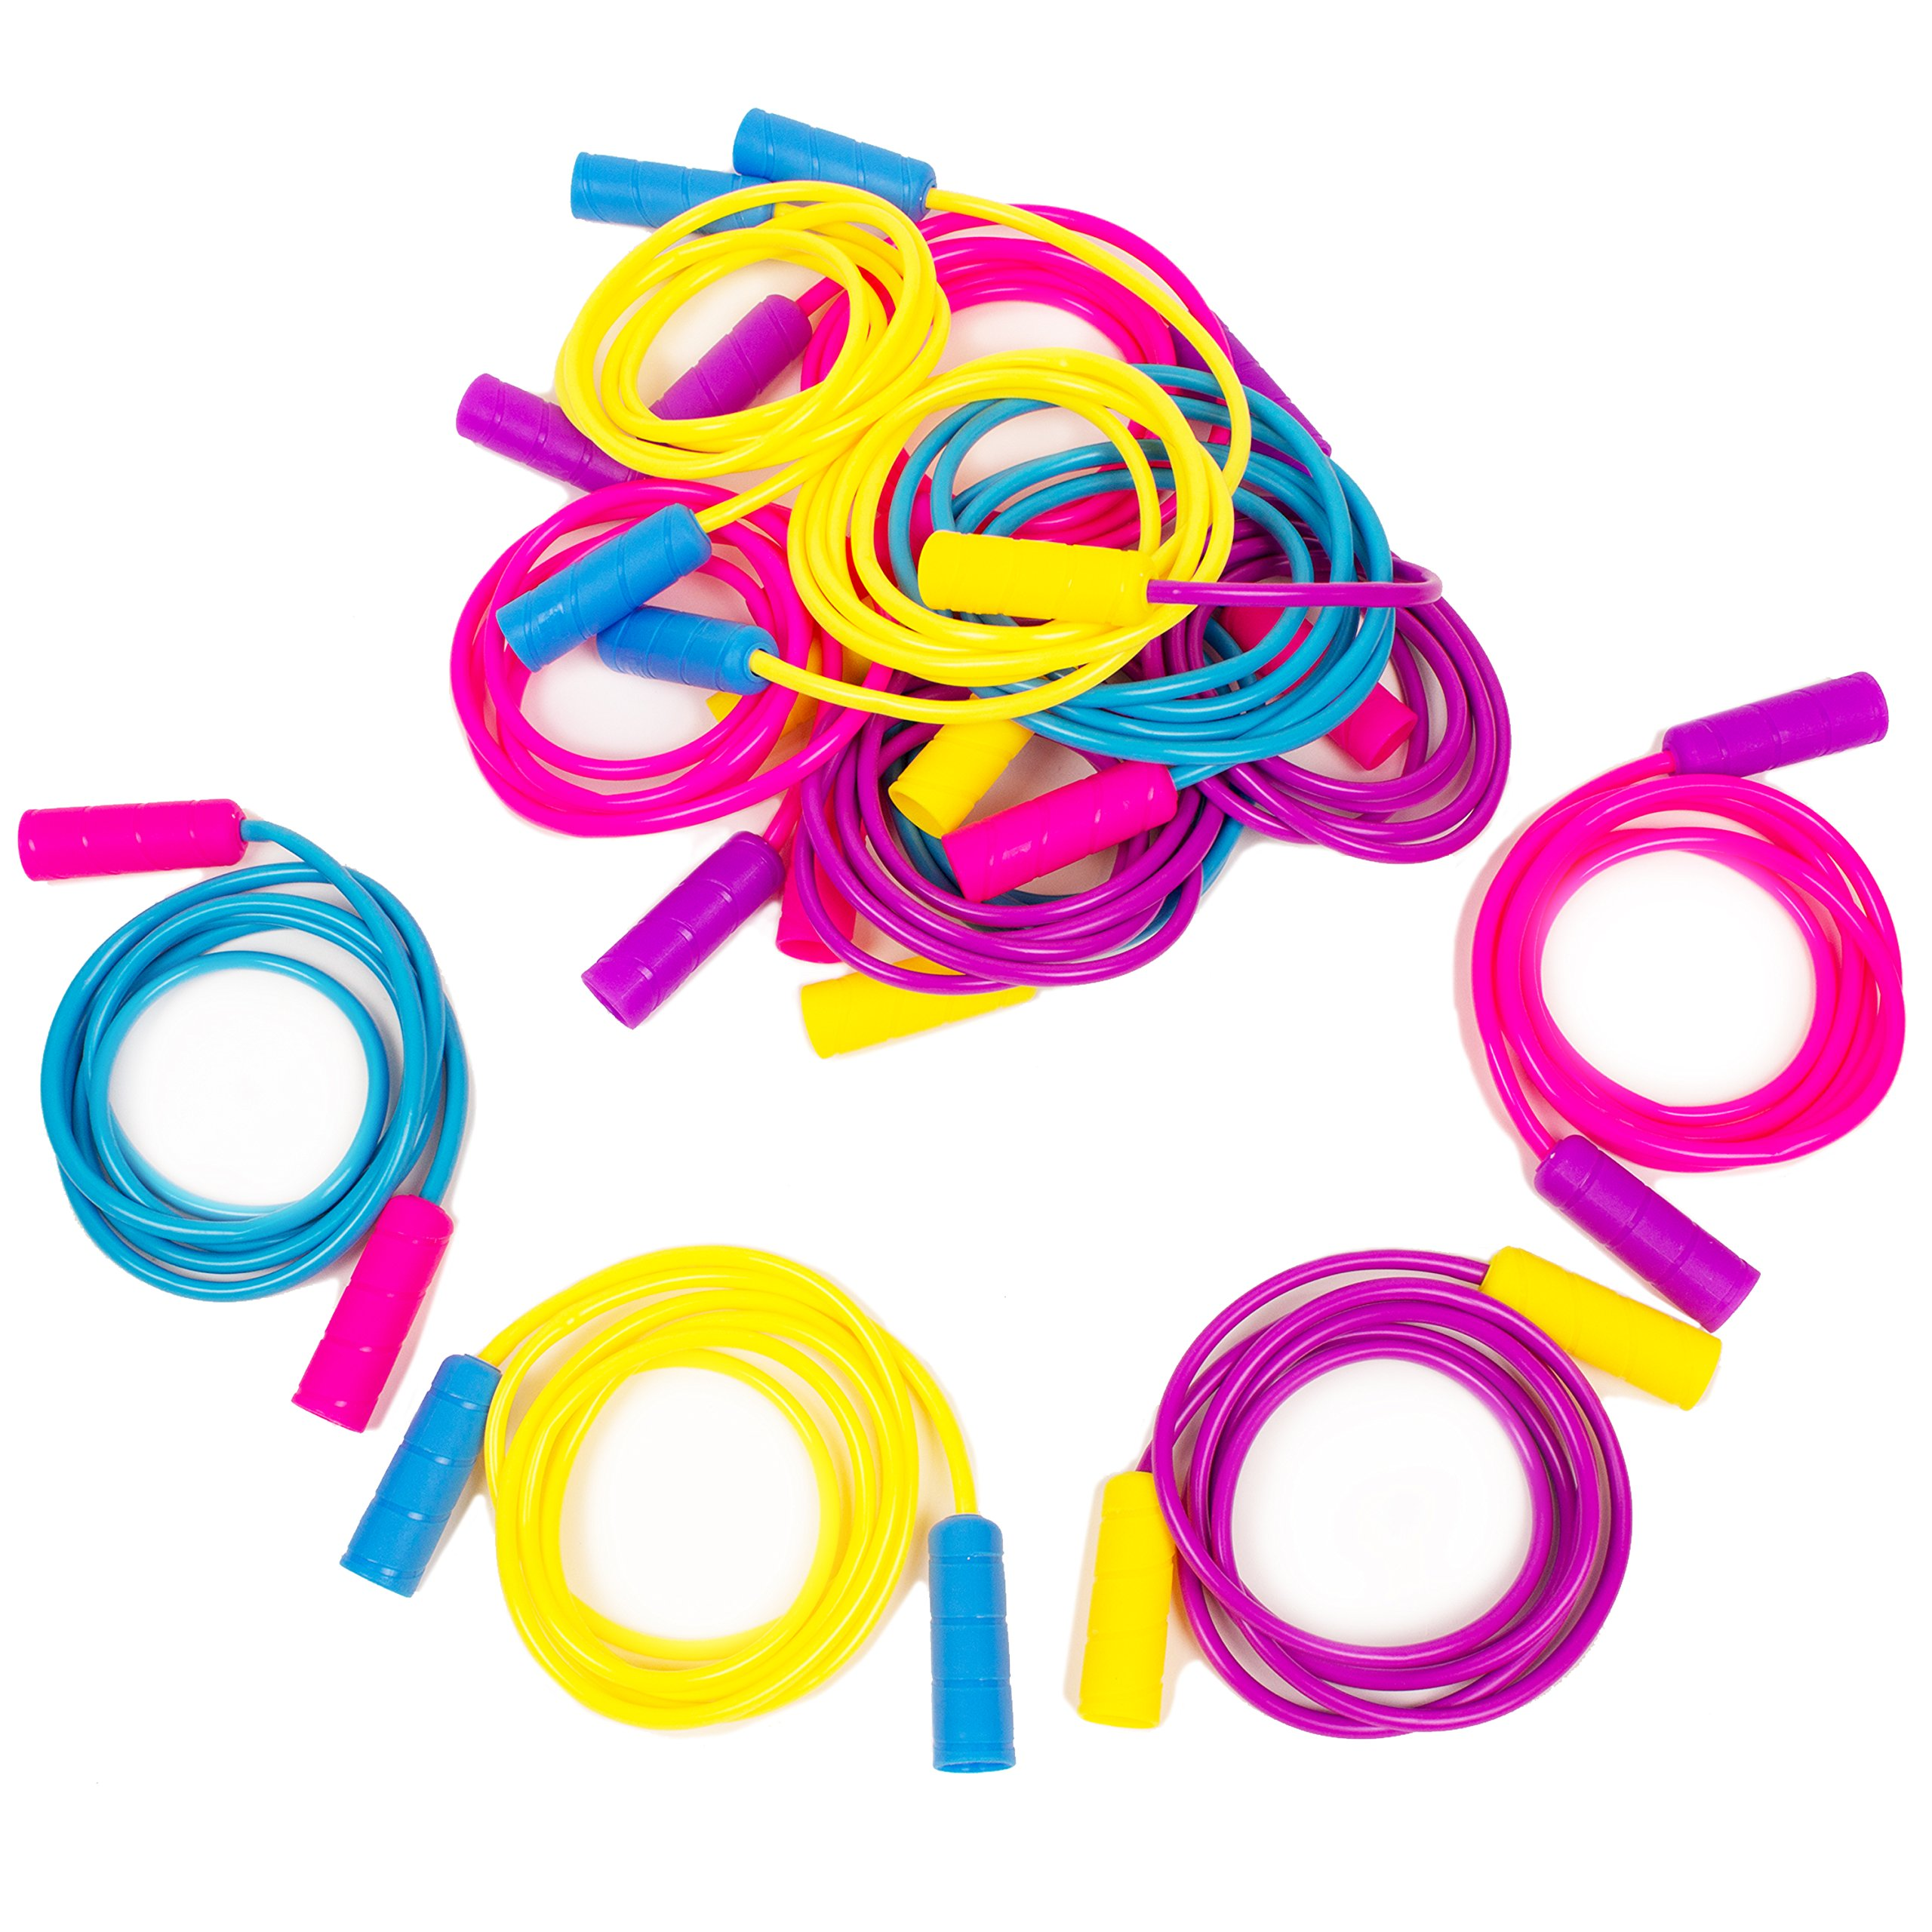 Boley 12 Pack Jump Rope Kids Set - 7 ft Jumping Rope for Boy or Girl Children in Assorted Bright Colors